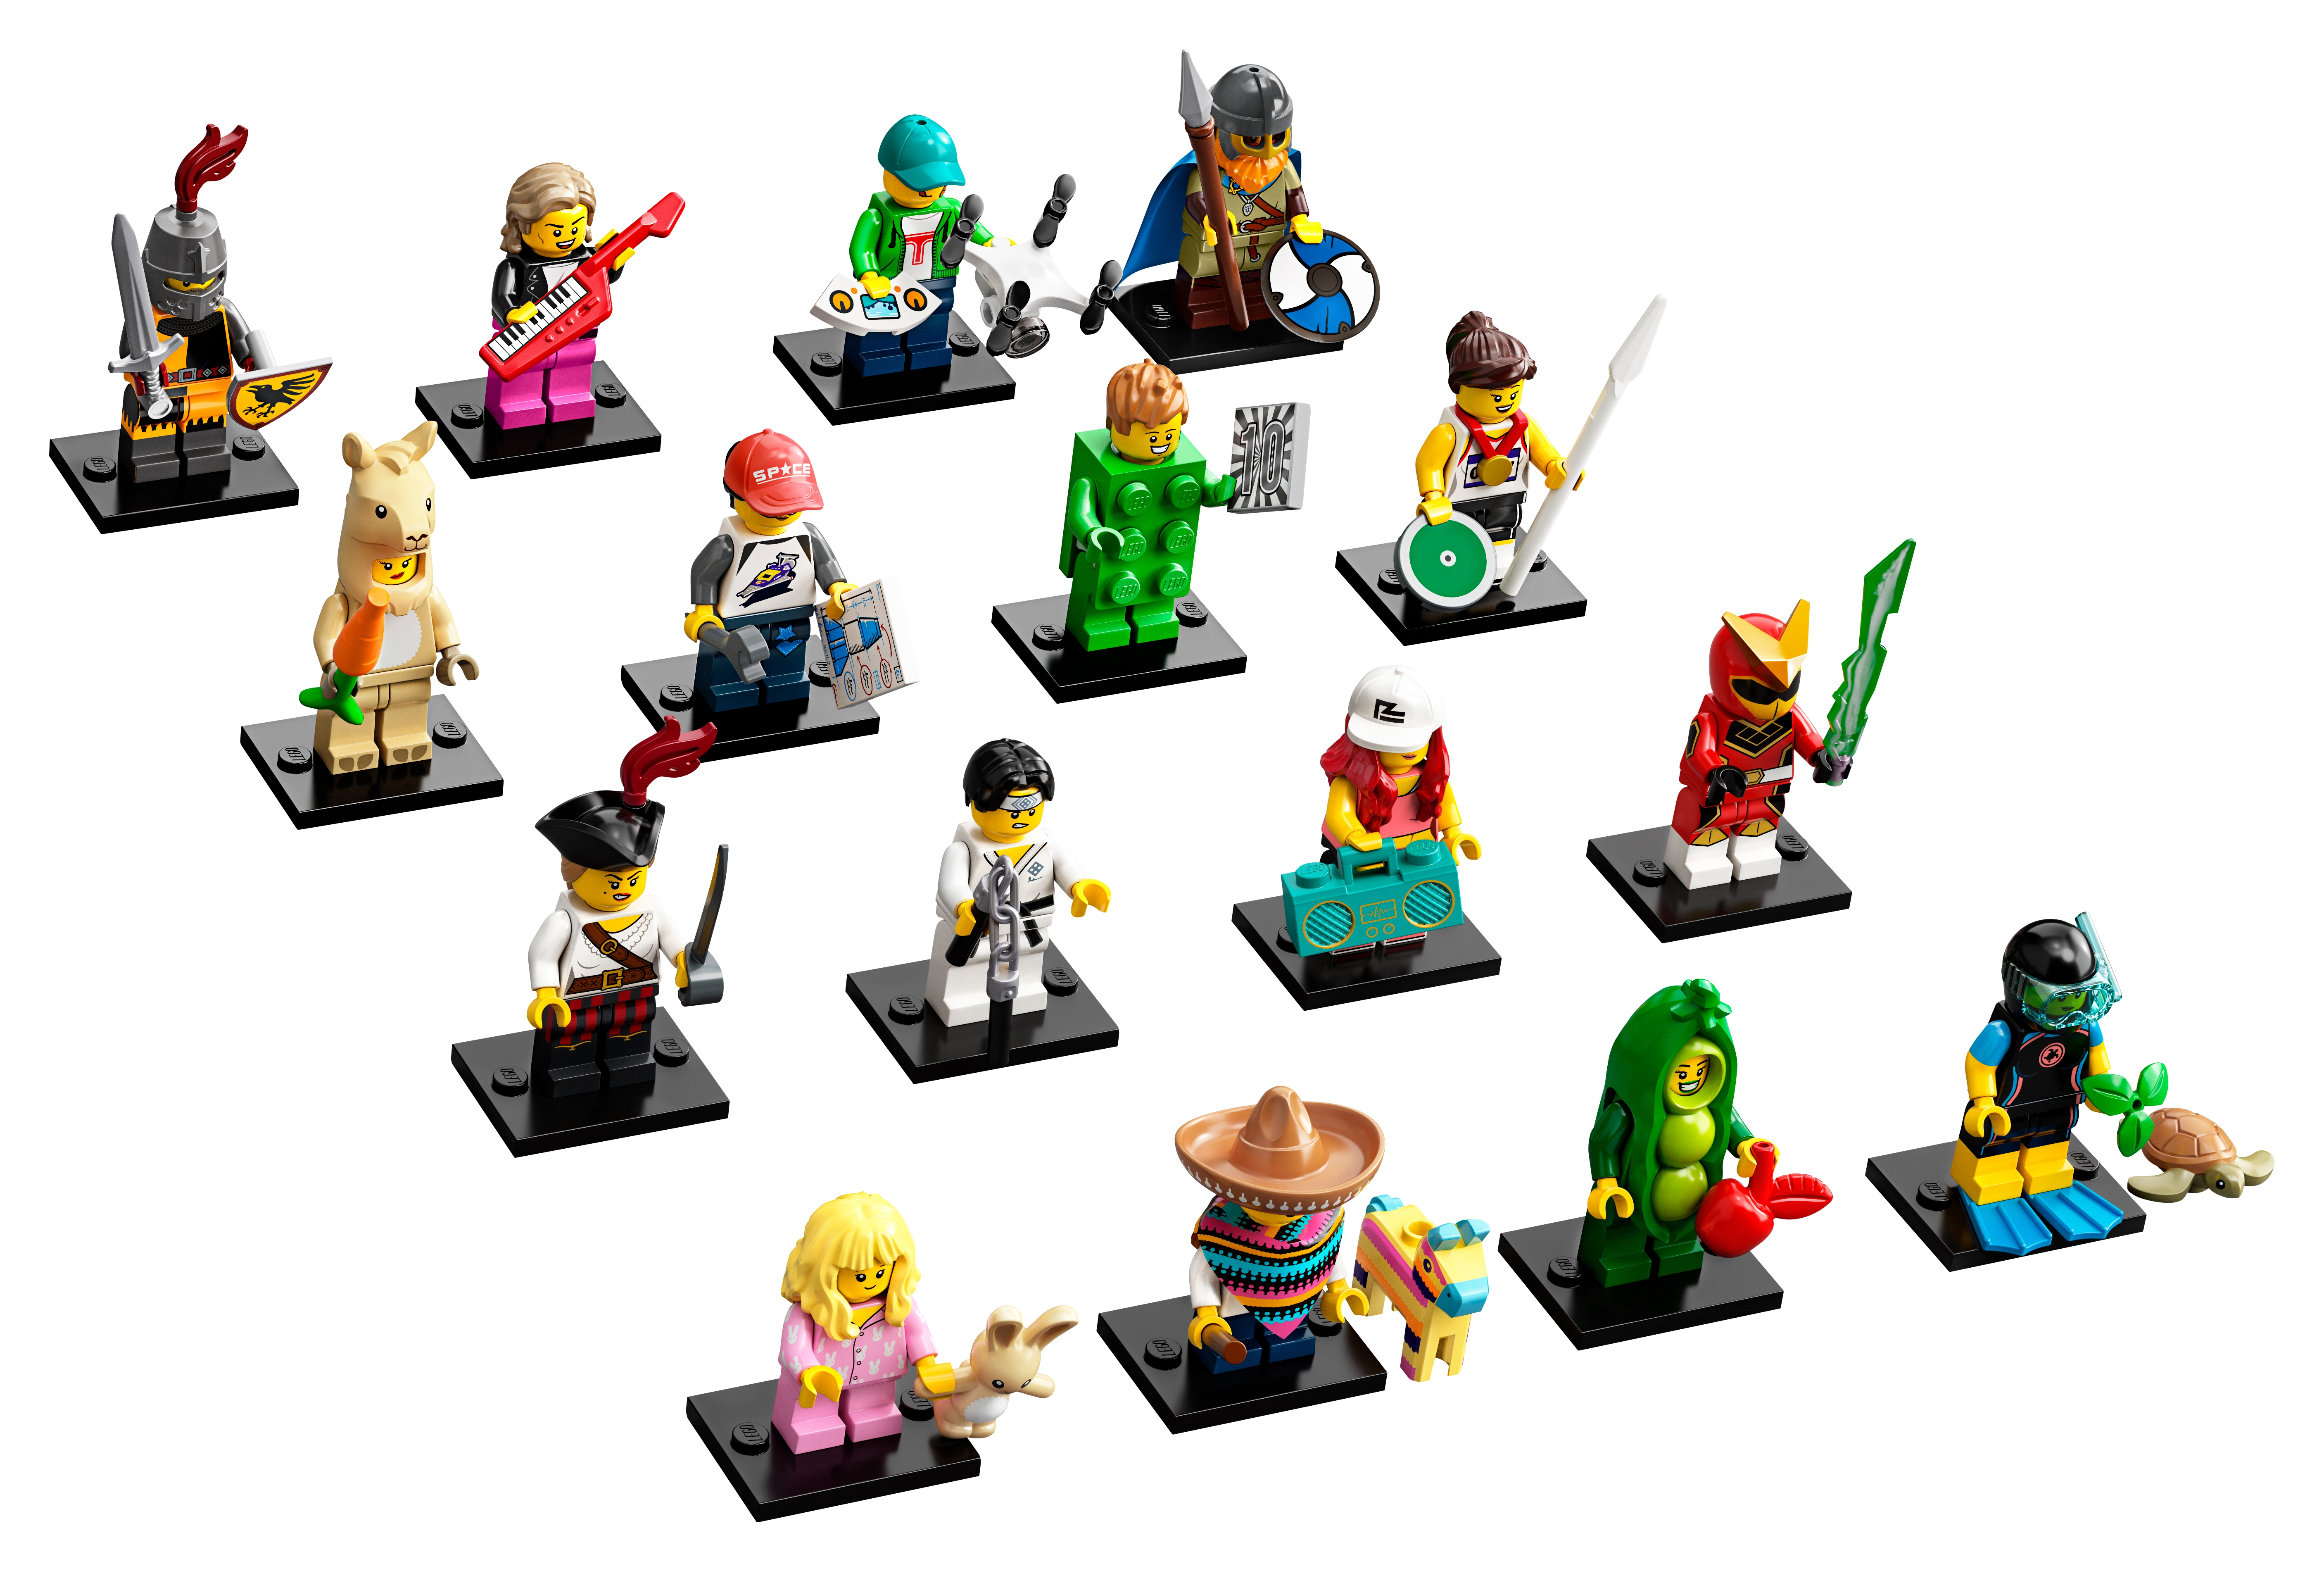 Series 20 71027 | UNKNOWN | Buy online at the Official LEGO® Shop SE